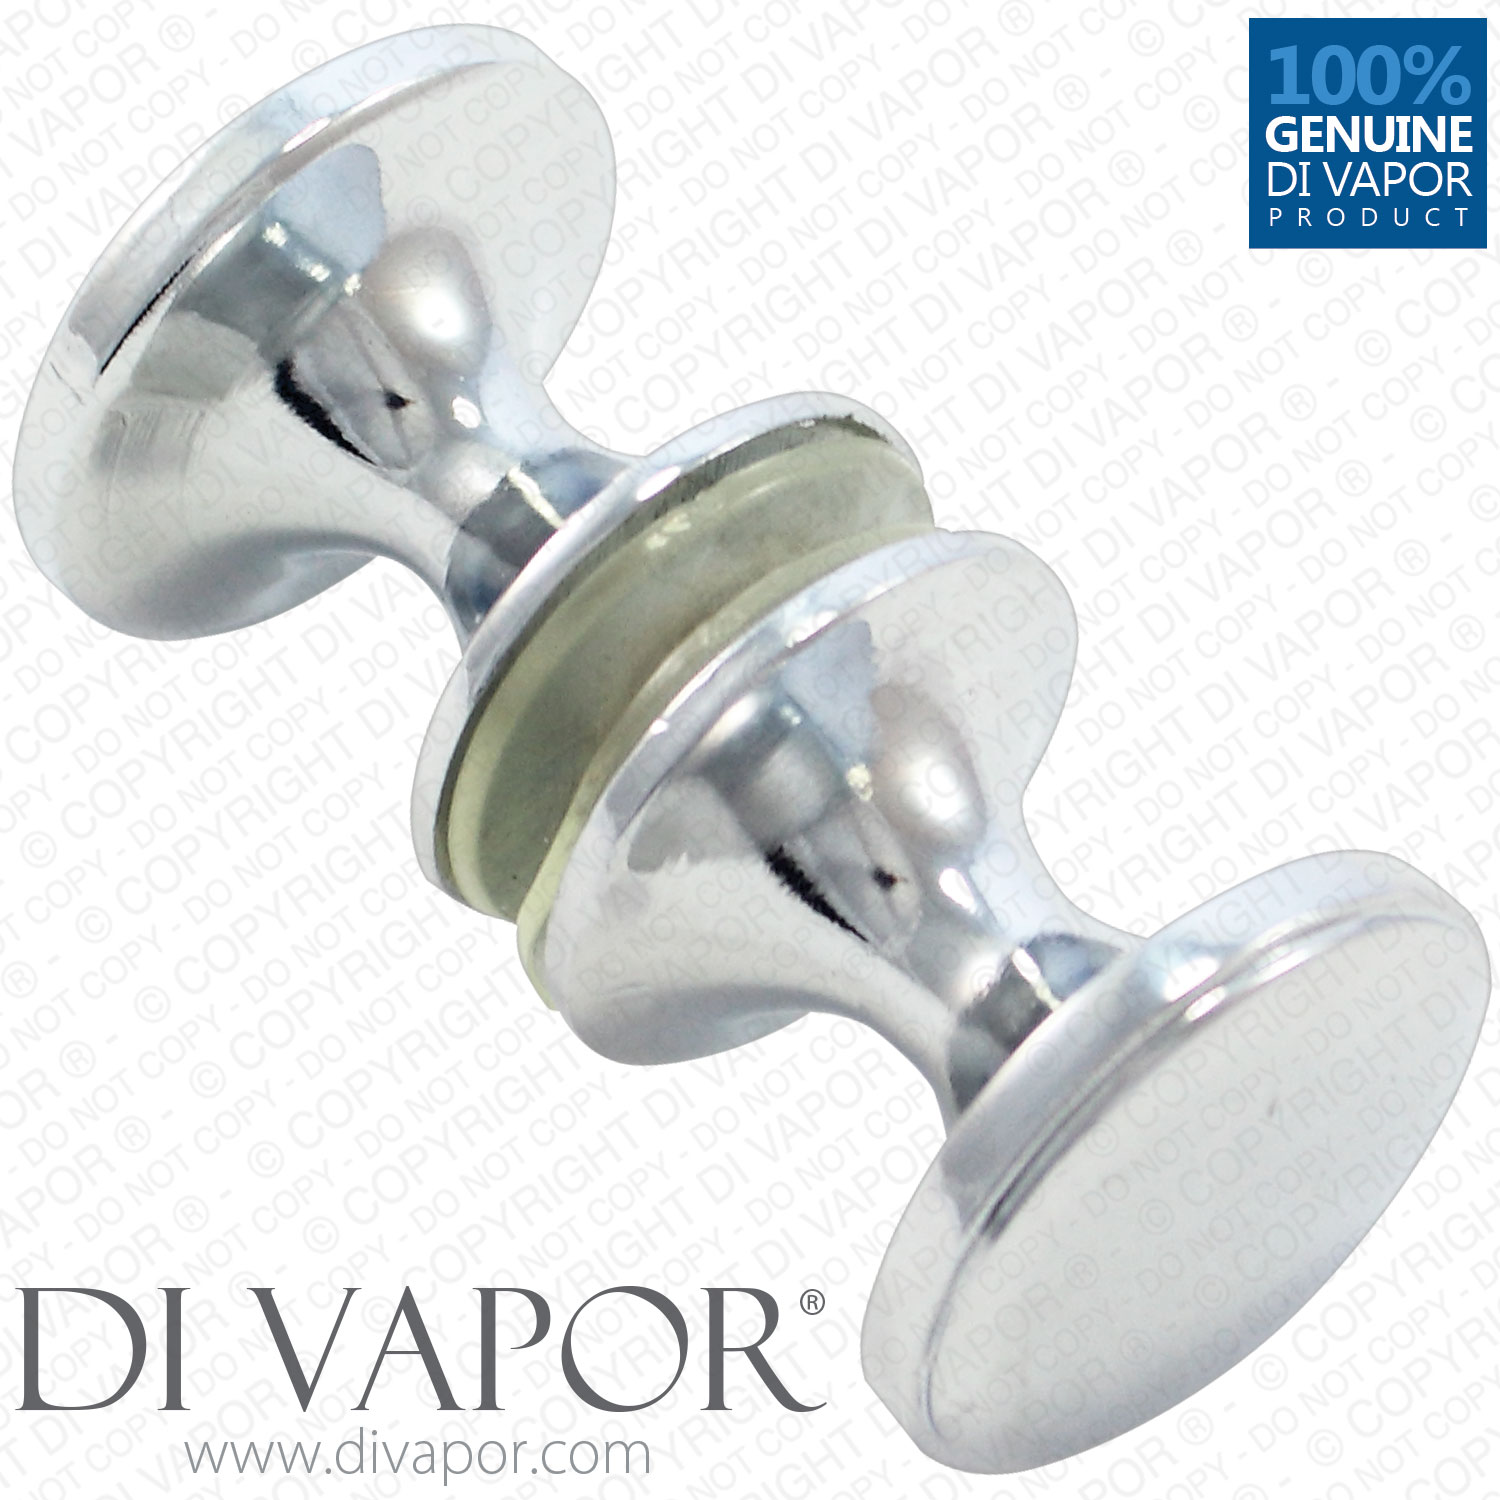 Di Vapor R Shower Door Knobs Chrome Finish Replacement